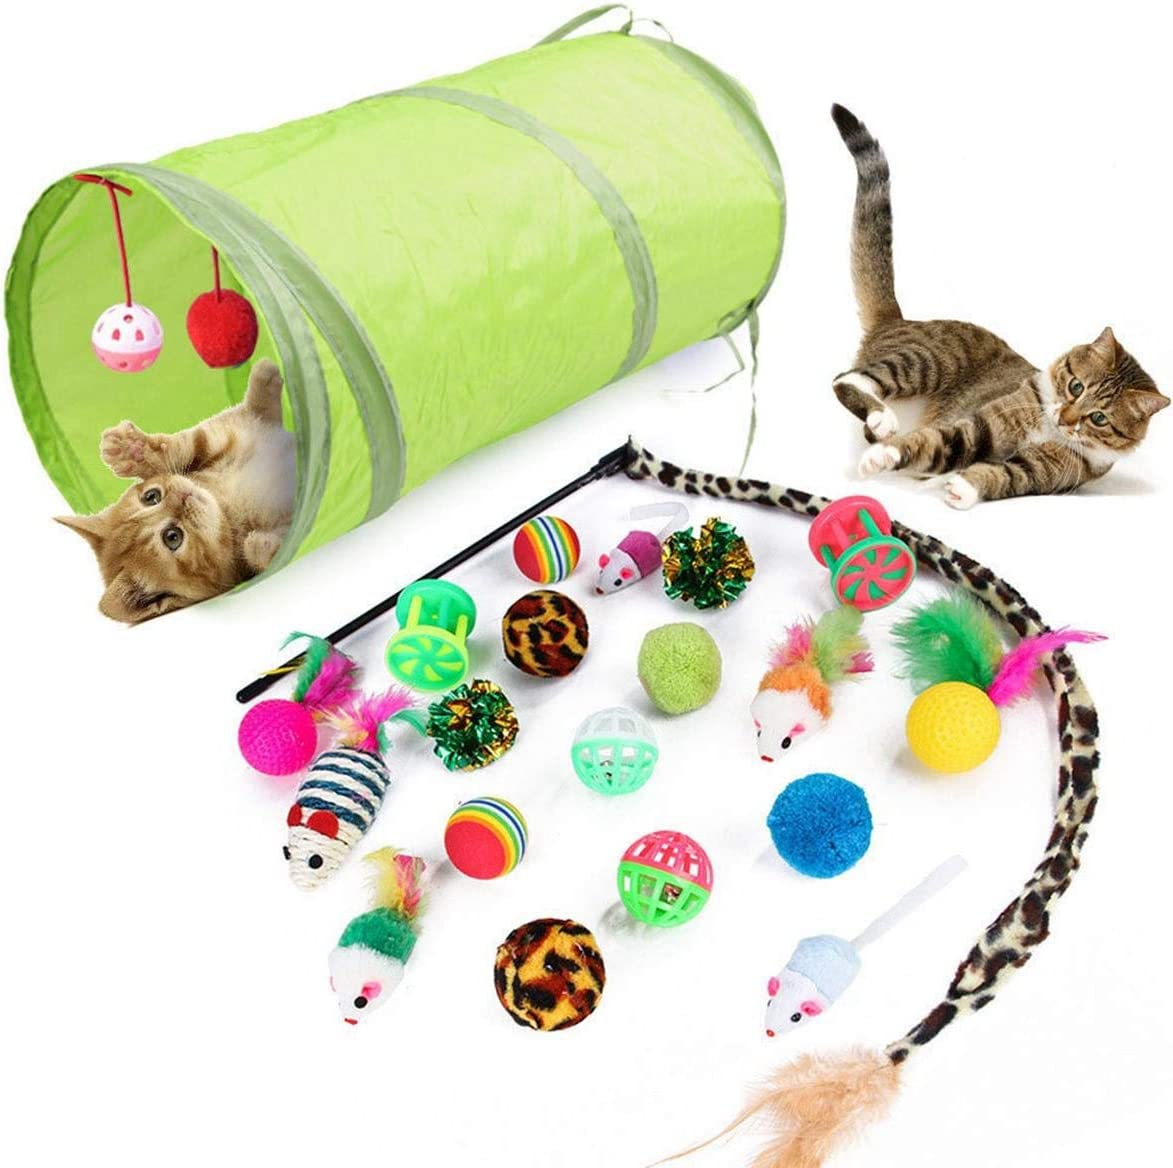 12 21pcs Kitten Toys Assorted Pet Super sale period limited Funny Playing Direct stock discount Collapsib